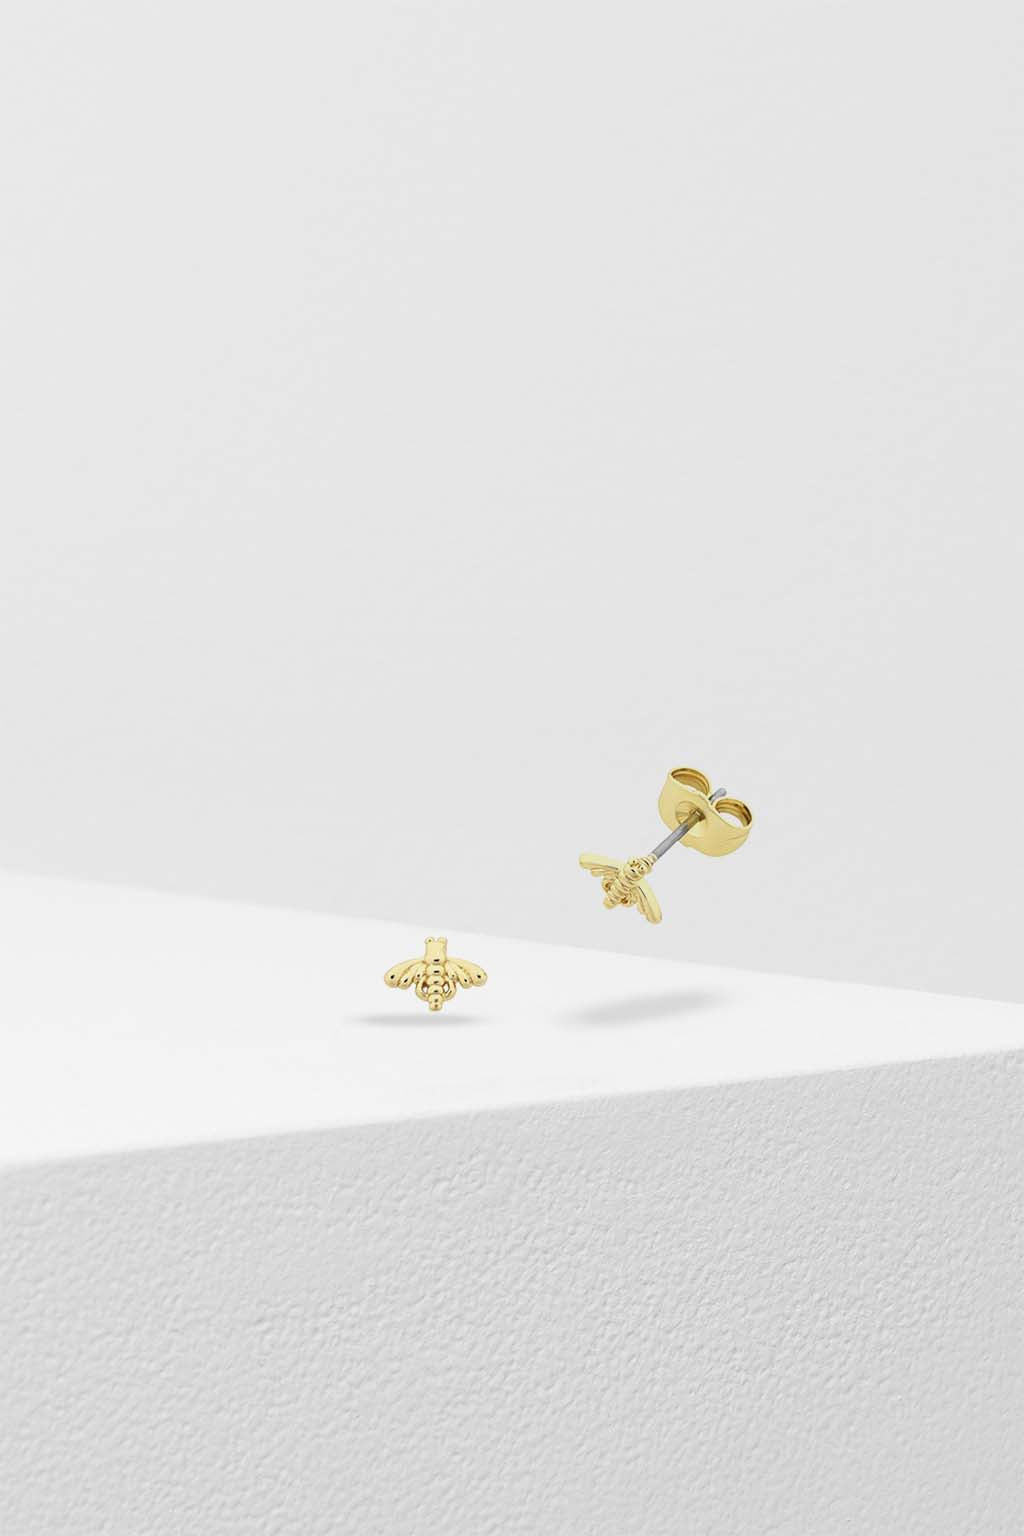 Liberte-Petite Bee Earring Gold-Mott and Mulberry